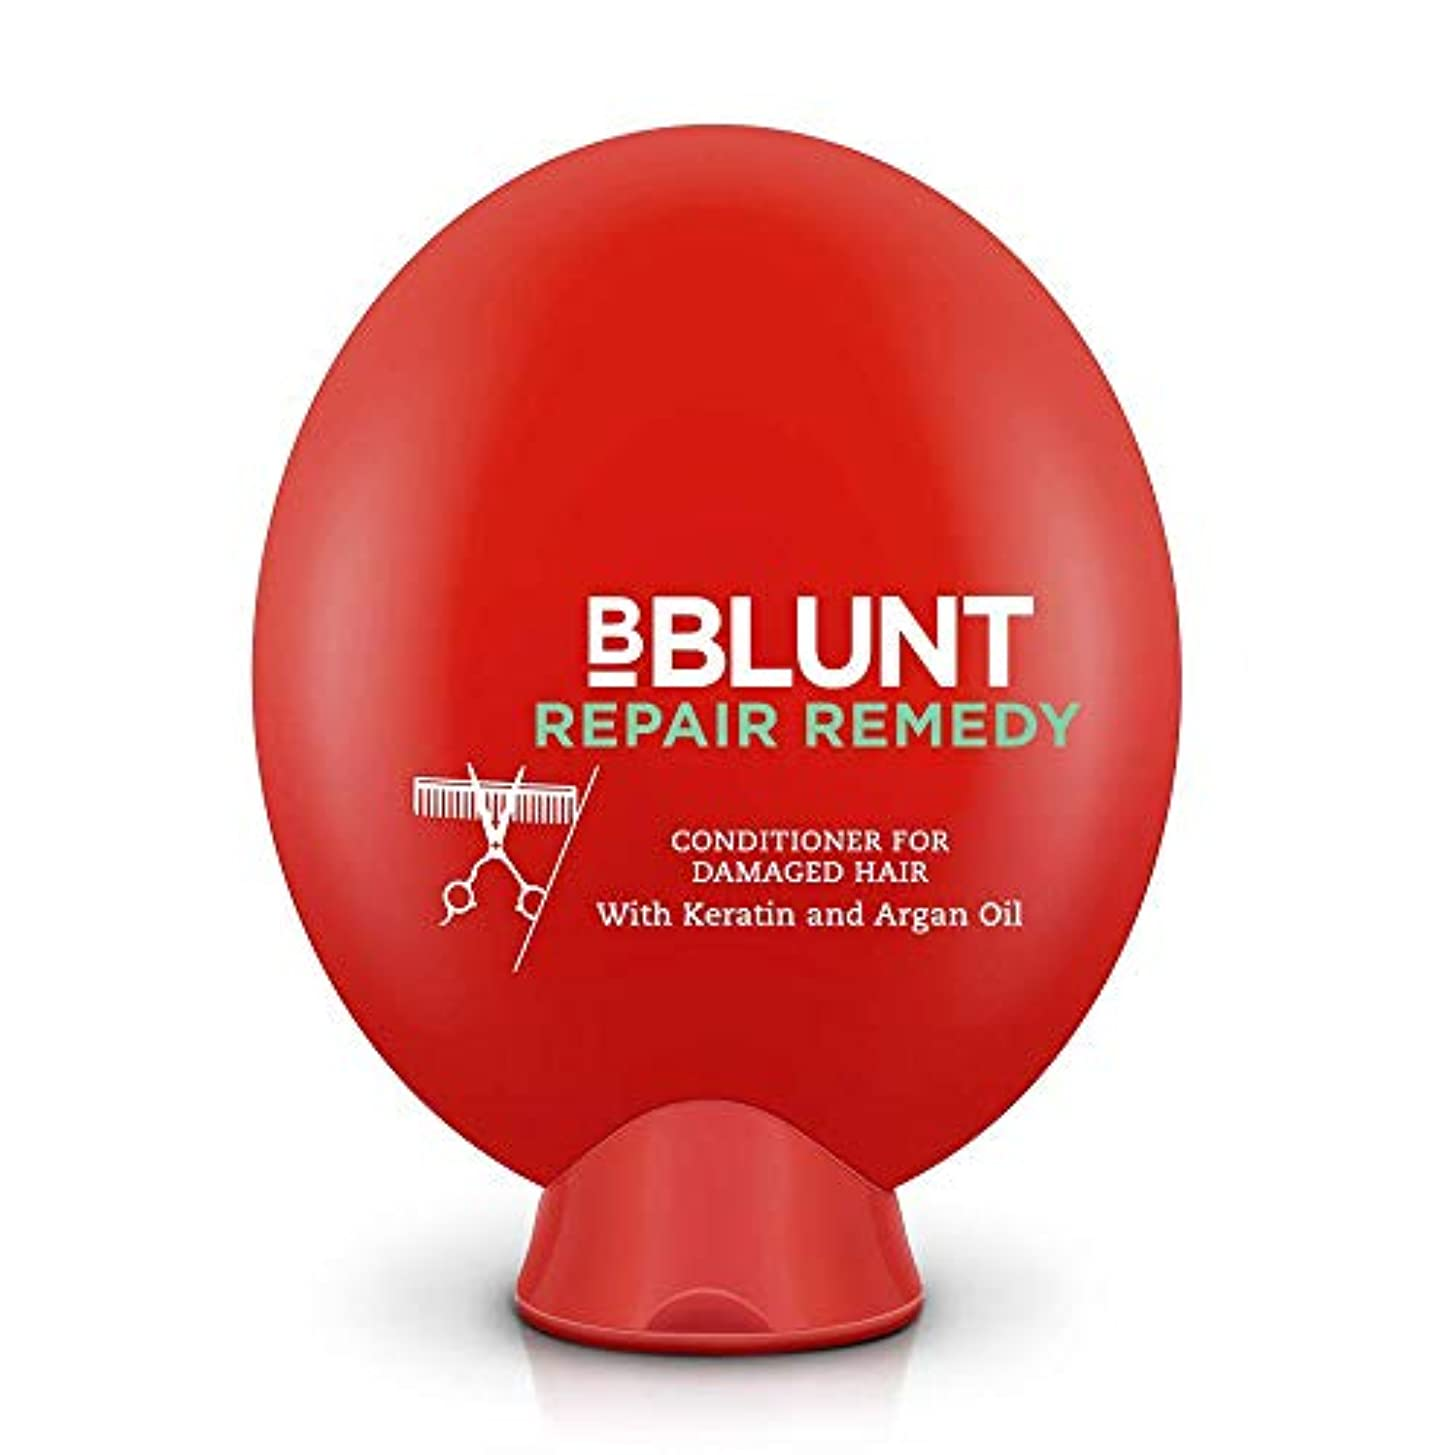 鮫物質チョークBBLUNT Repair Remedy Conditioner for Damaged Hair, 200g (Keratin and Argan Oil)